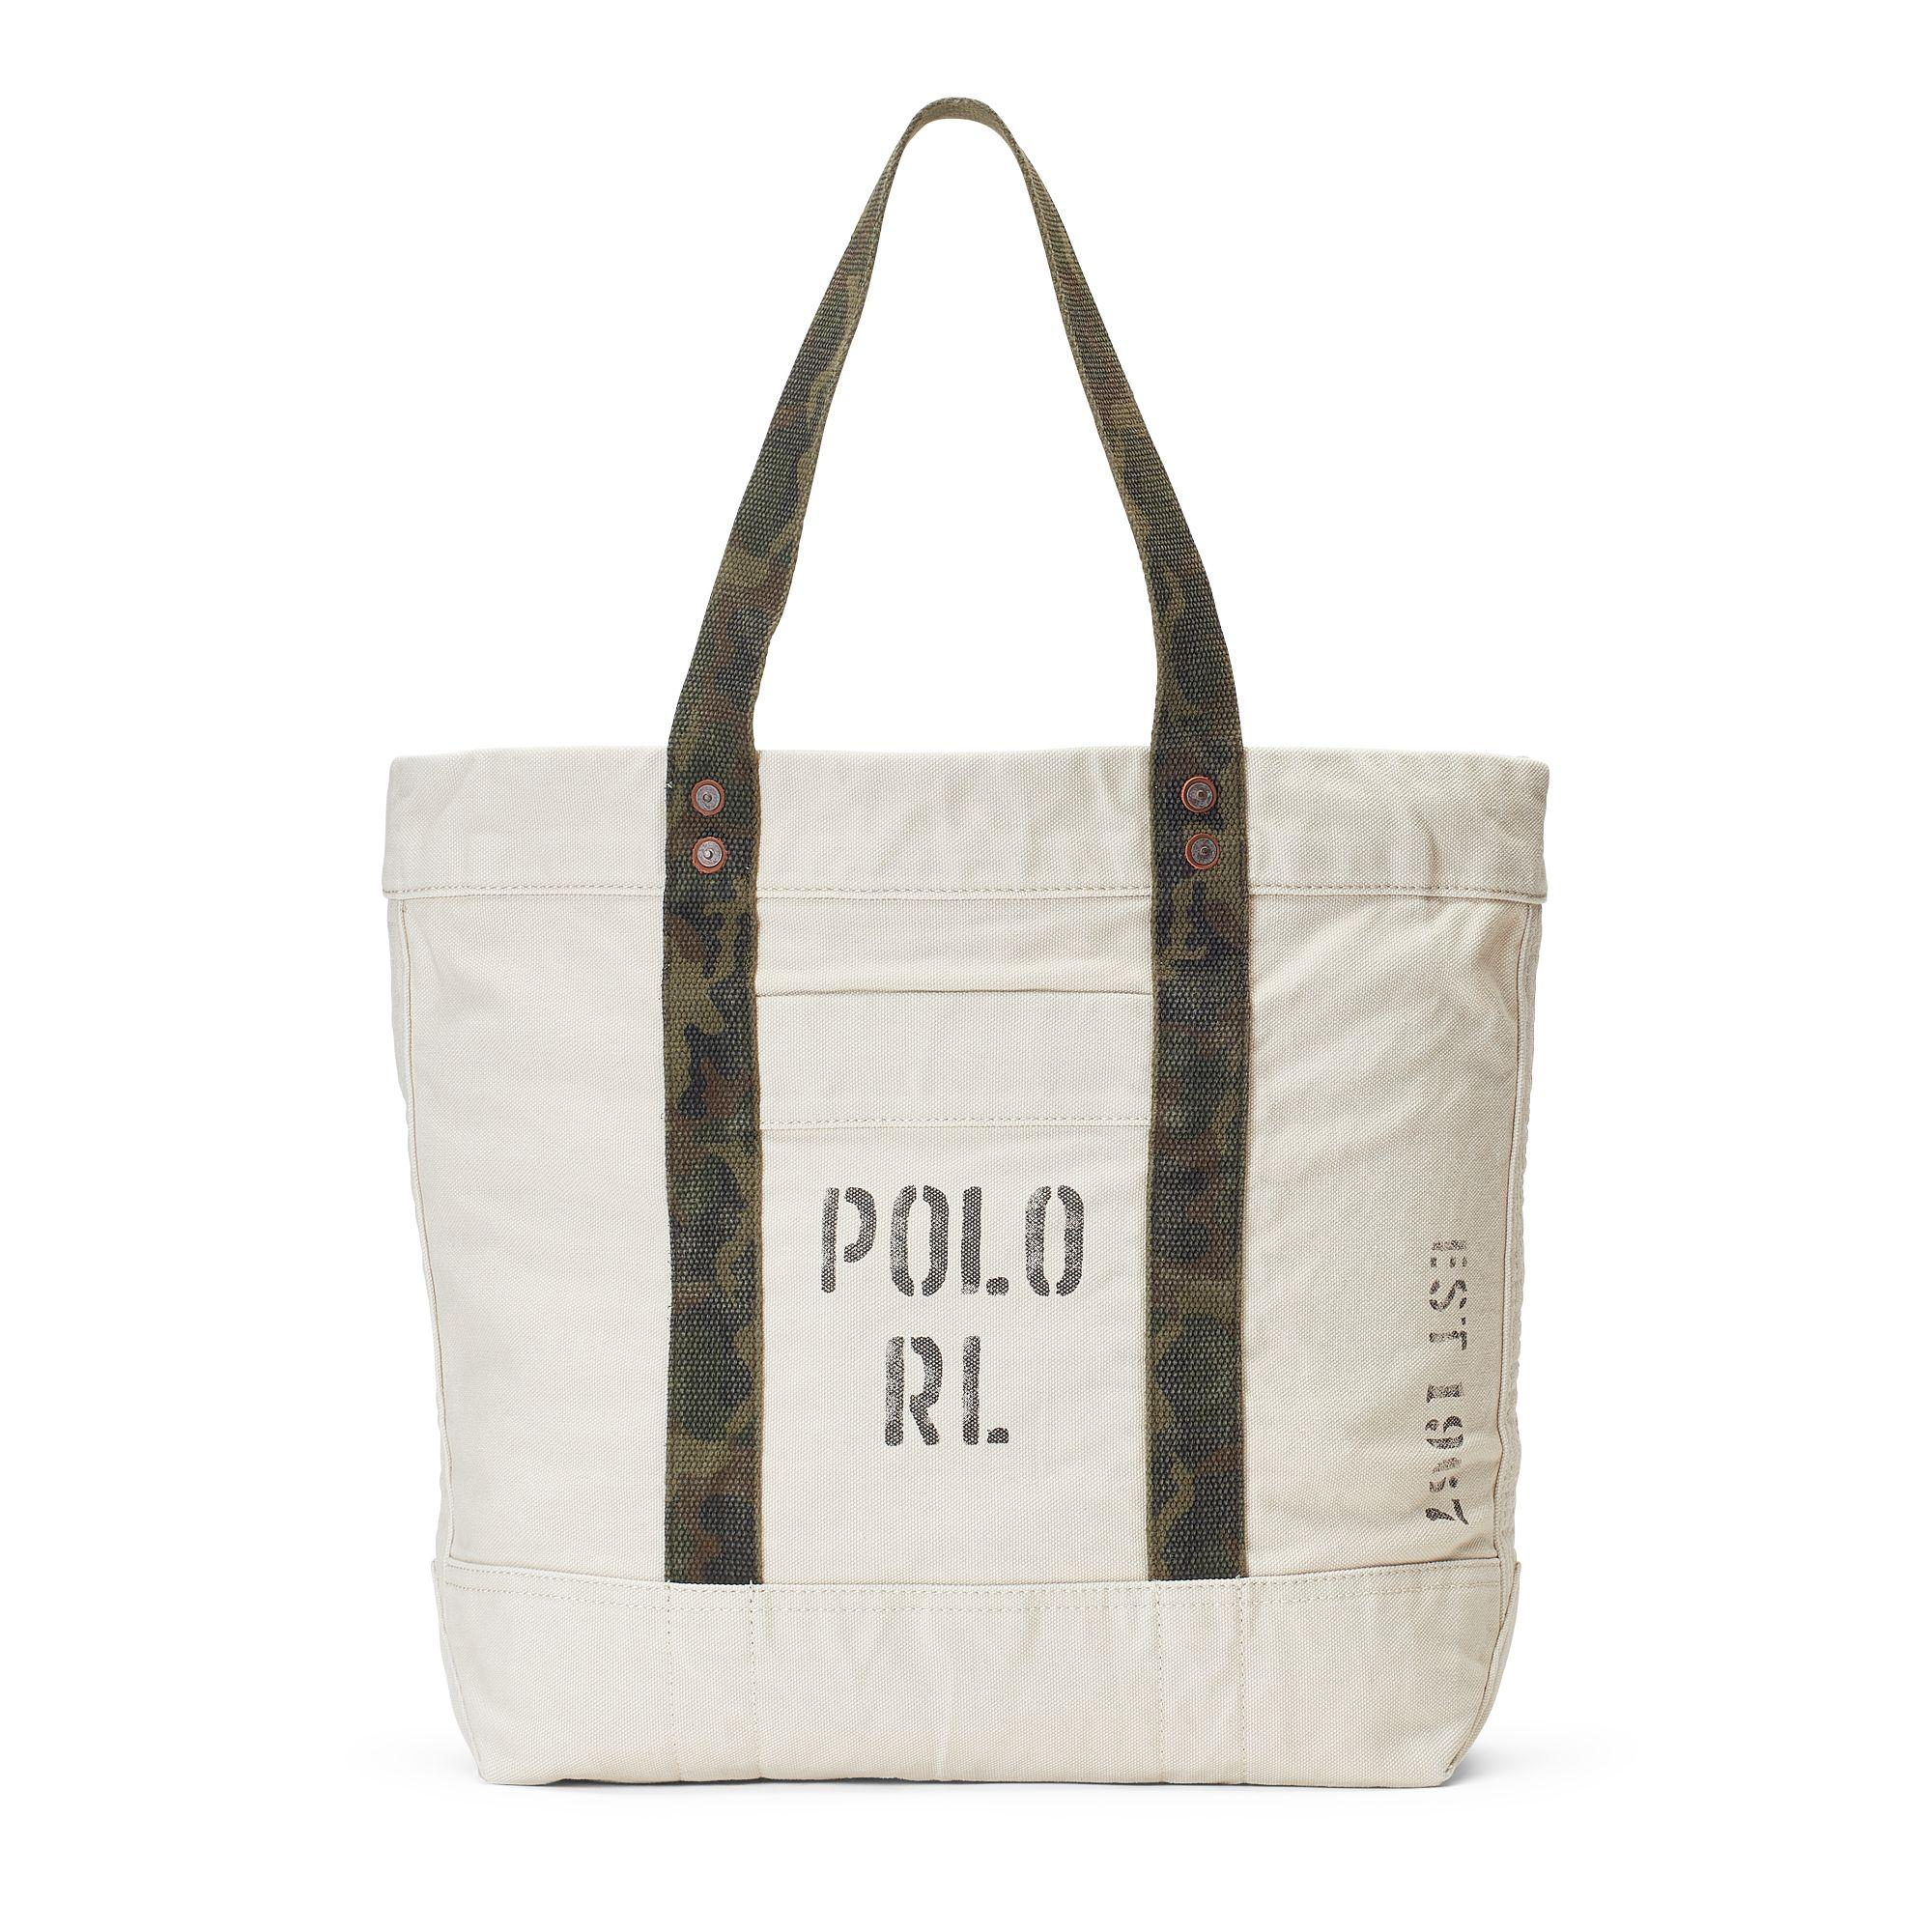 9c87f9aa79 Lyst - Polo Ralph Lauren Faded-text Canvas Tote Bag in Natural ...